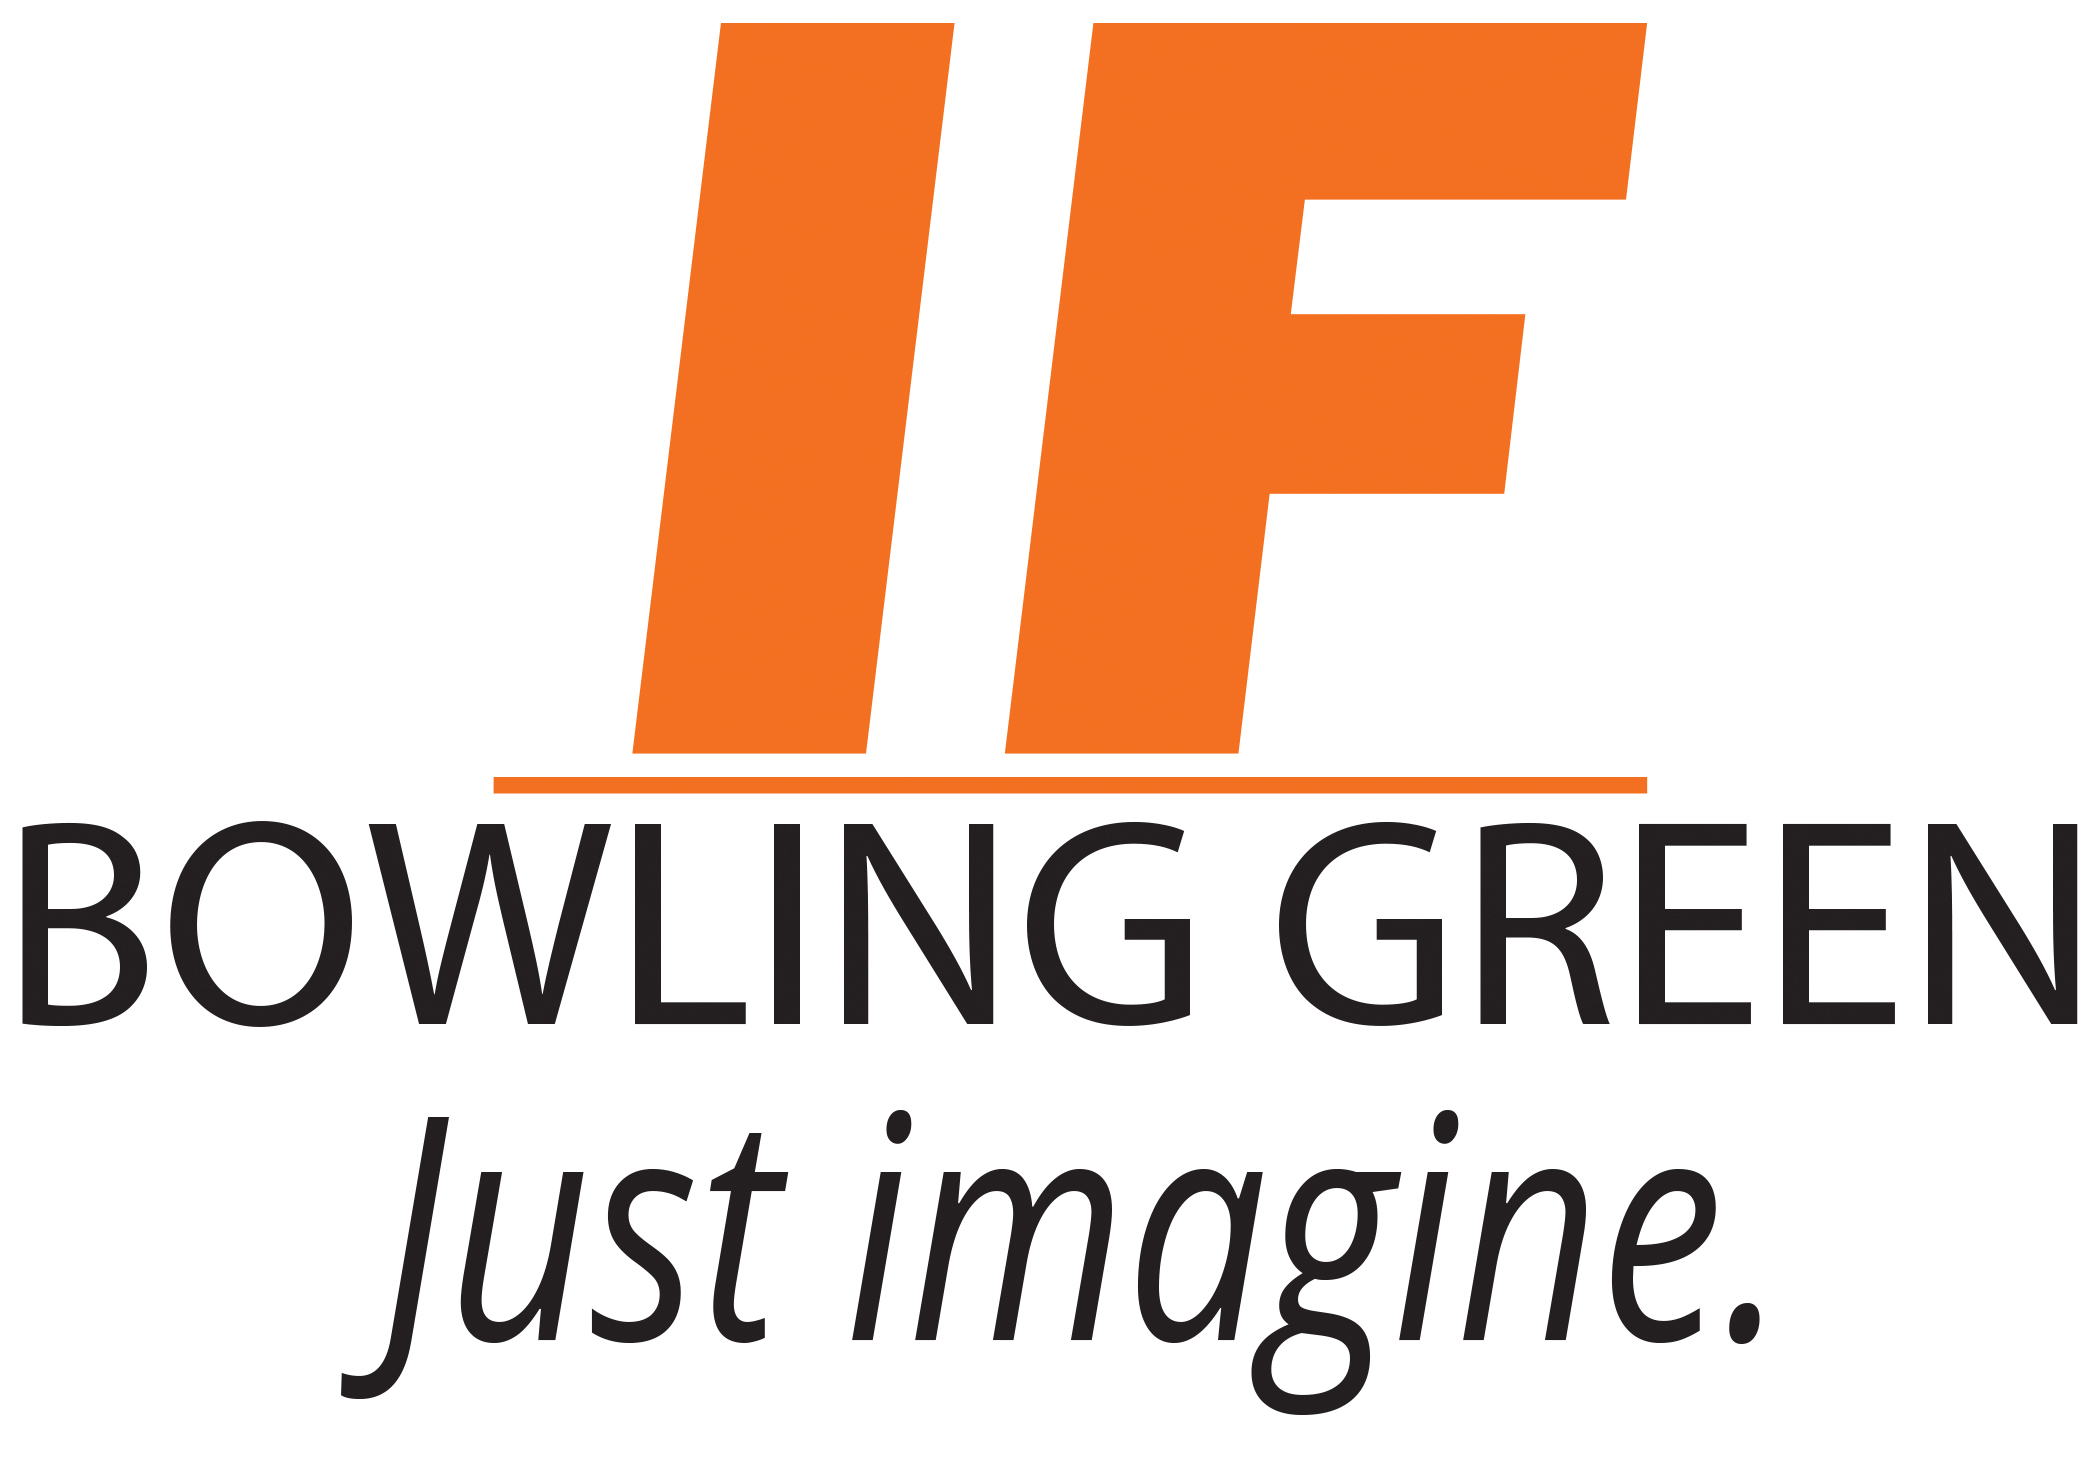 IdeaFestival Bowing Green logo